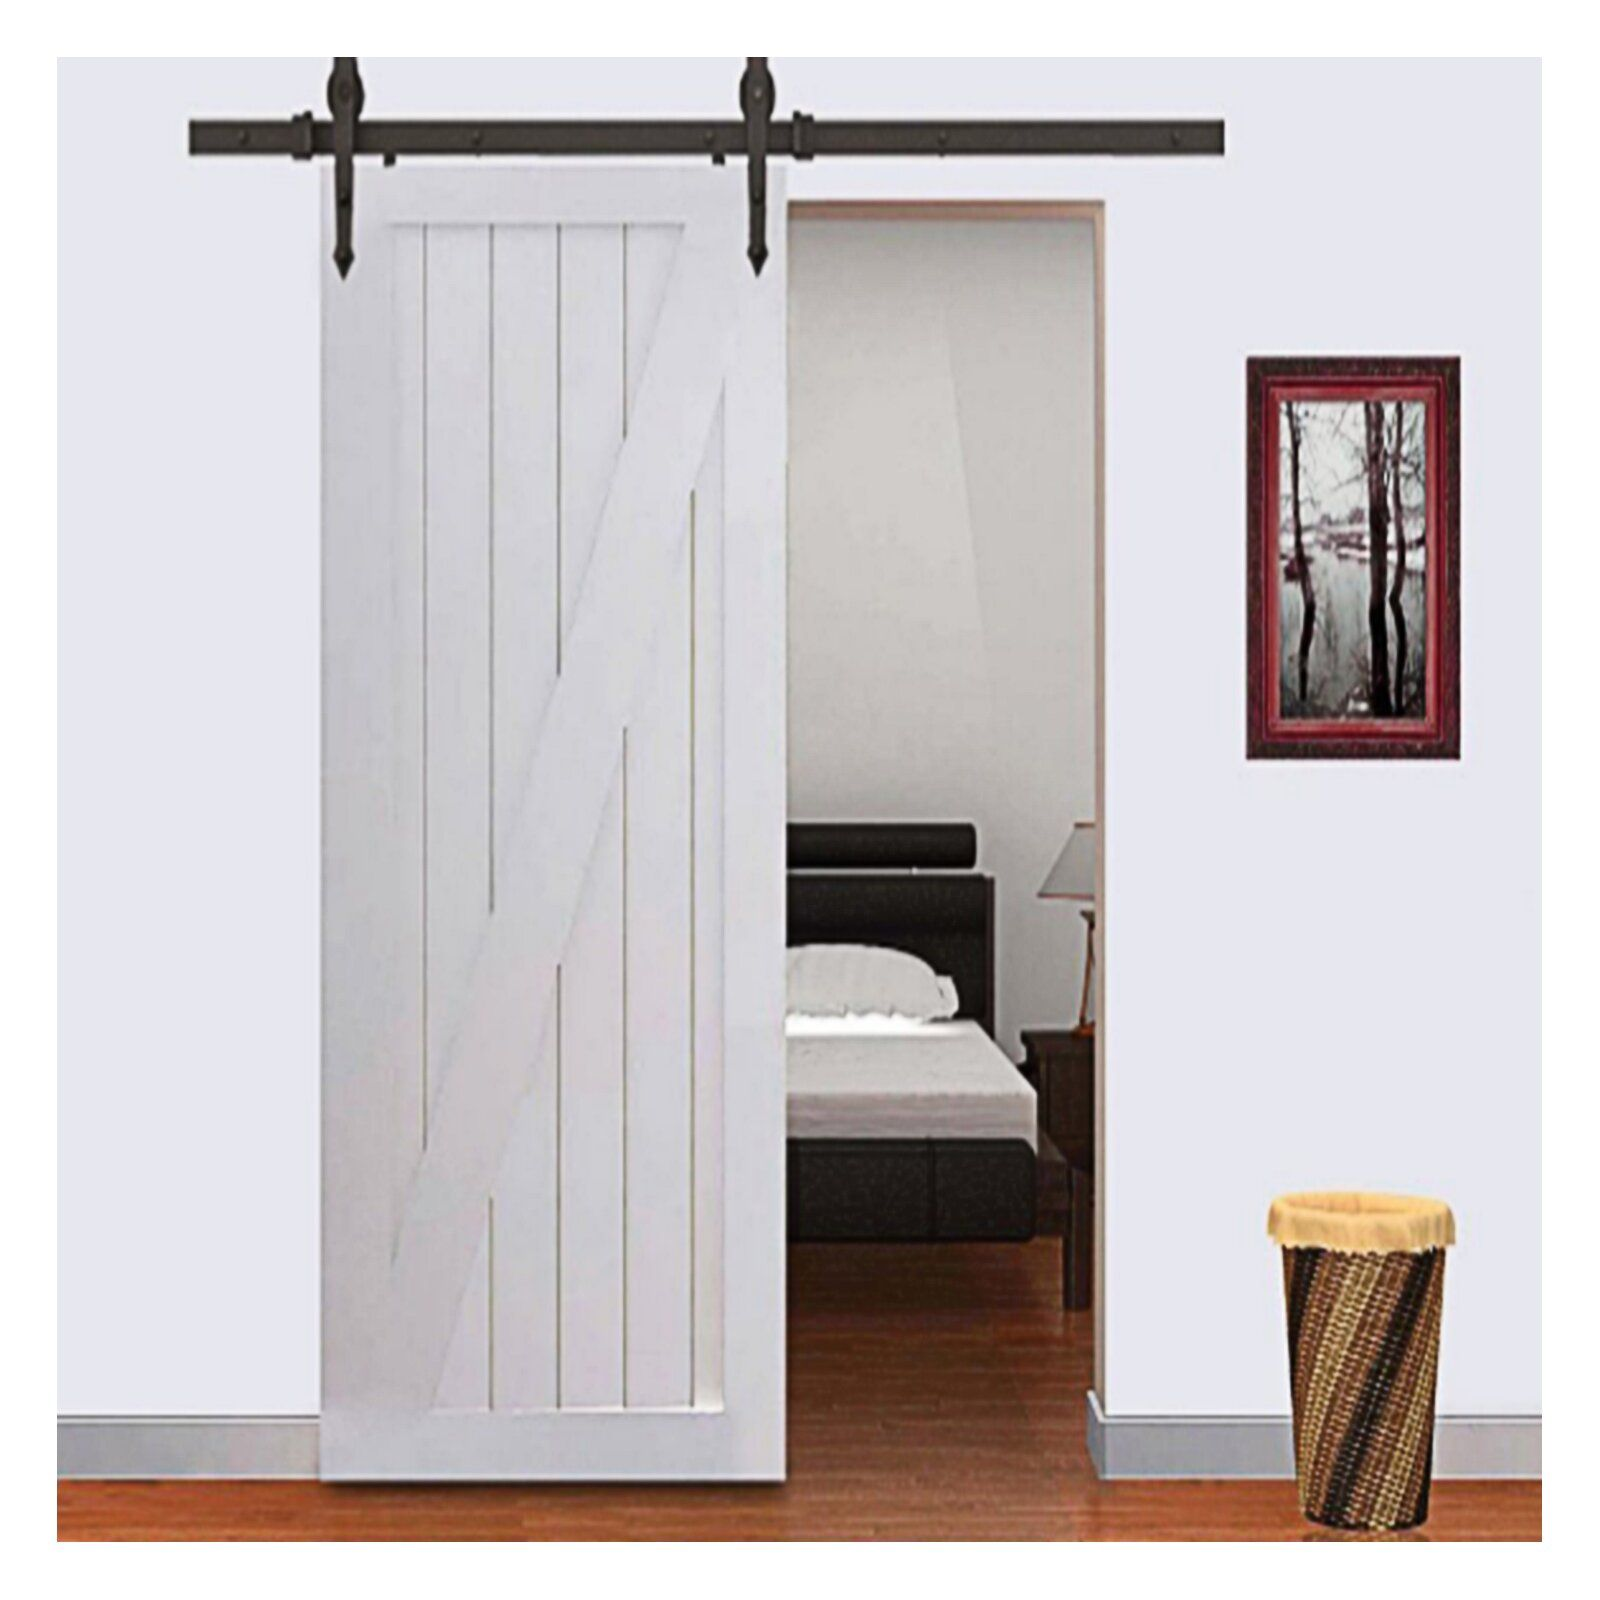 Arrow Sliding Standard Single Track Barn Door Hardware Kit Wood Doors Interior Doors Interior Sliding Door Hardware